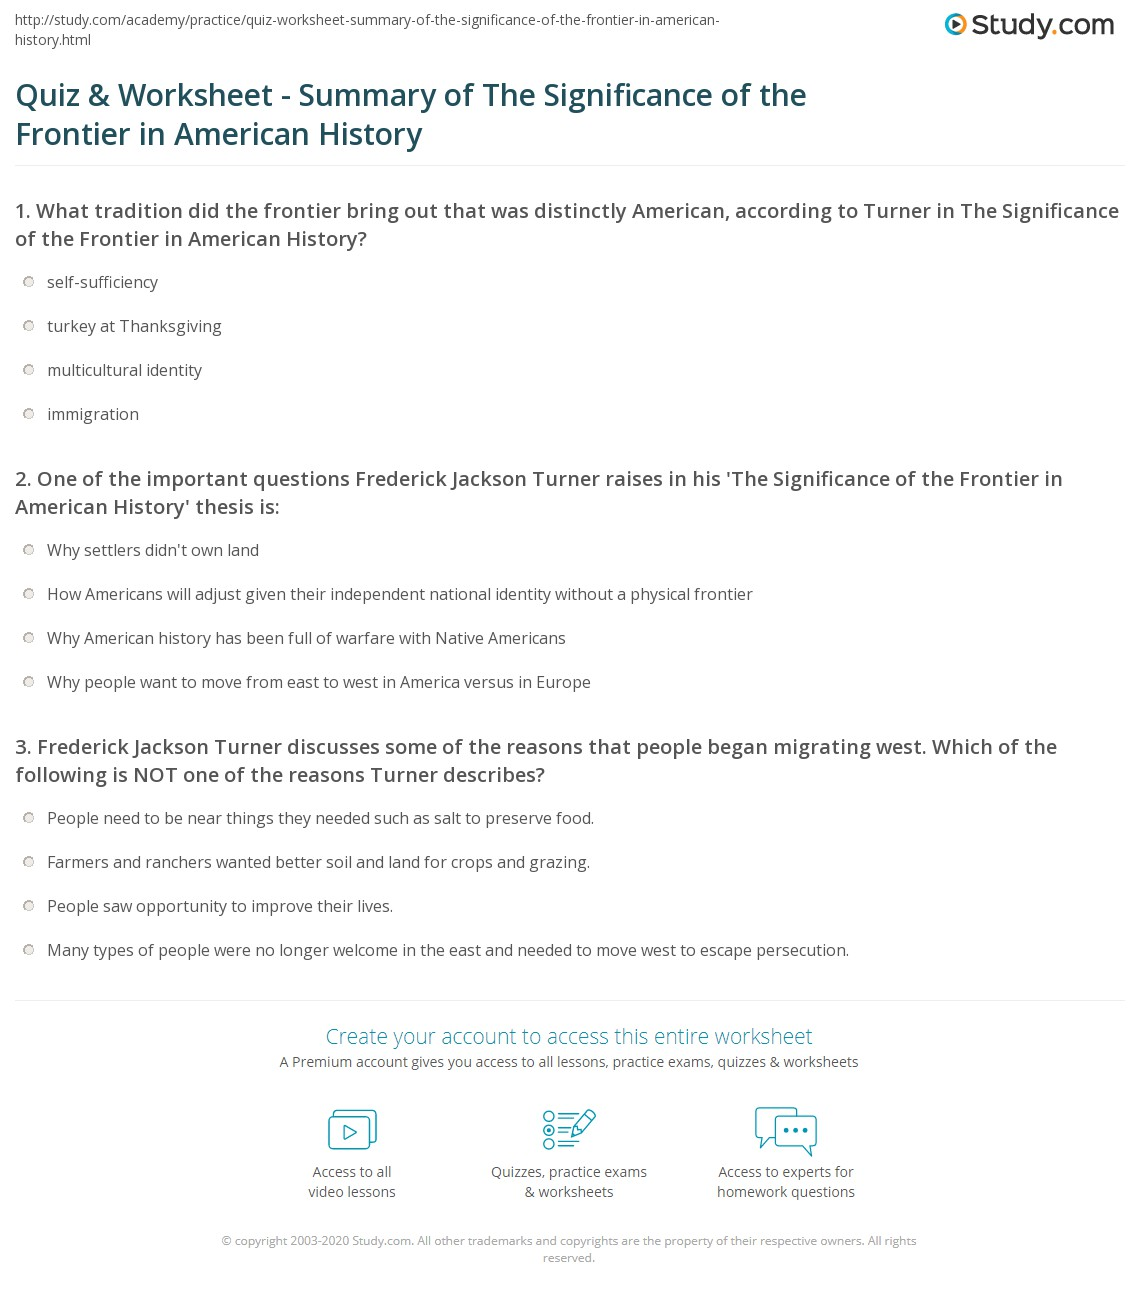 quiz worksheet summary of the significance of the frontier in print the significance of the frontier in american history by turner summary worksheet